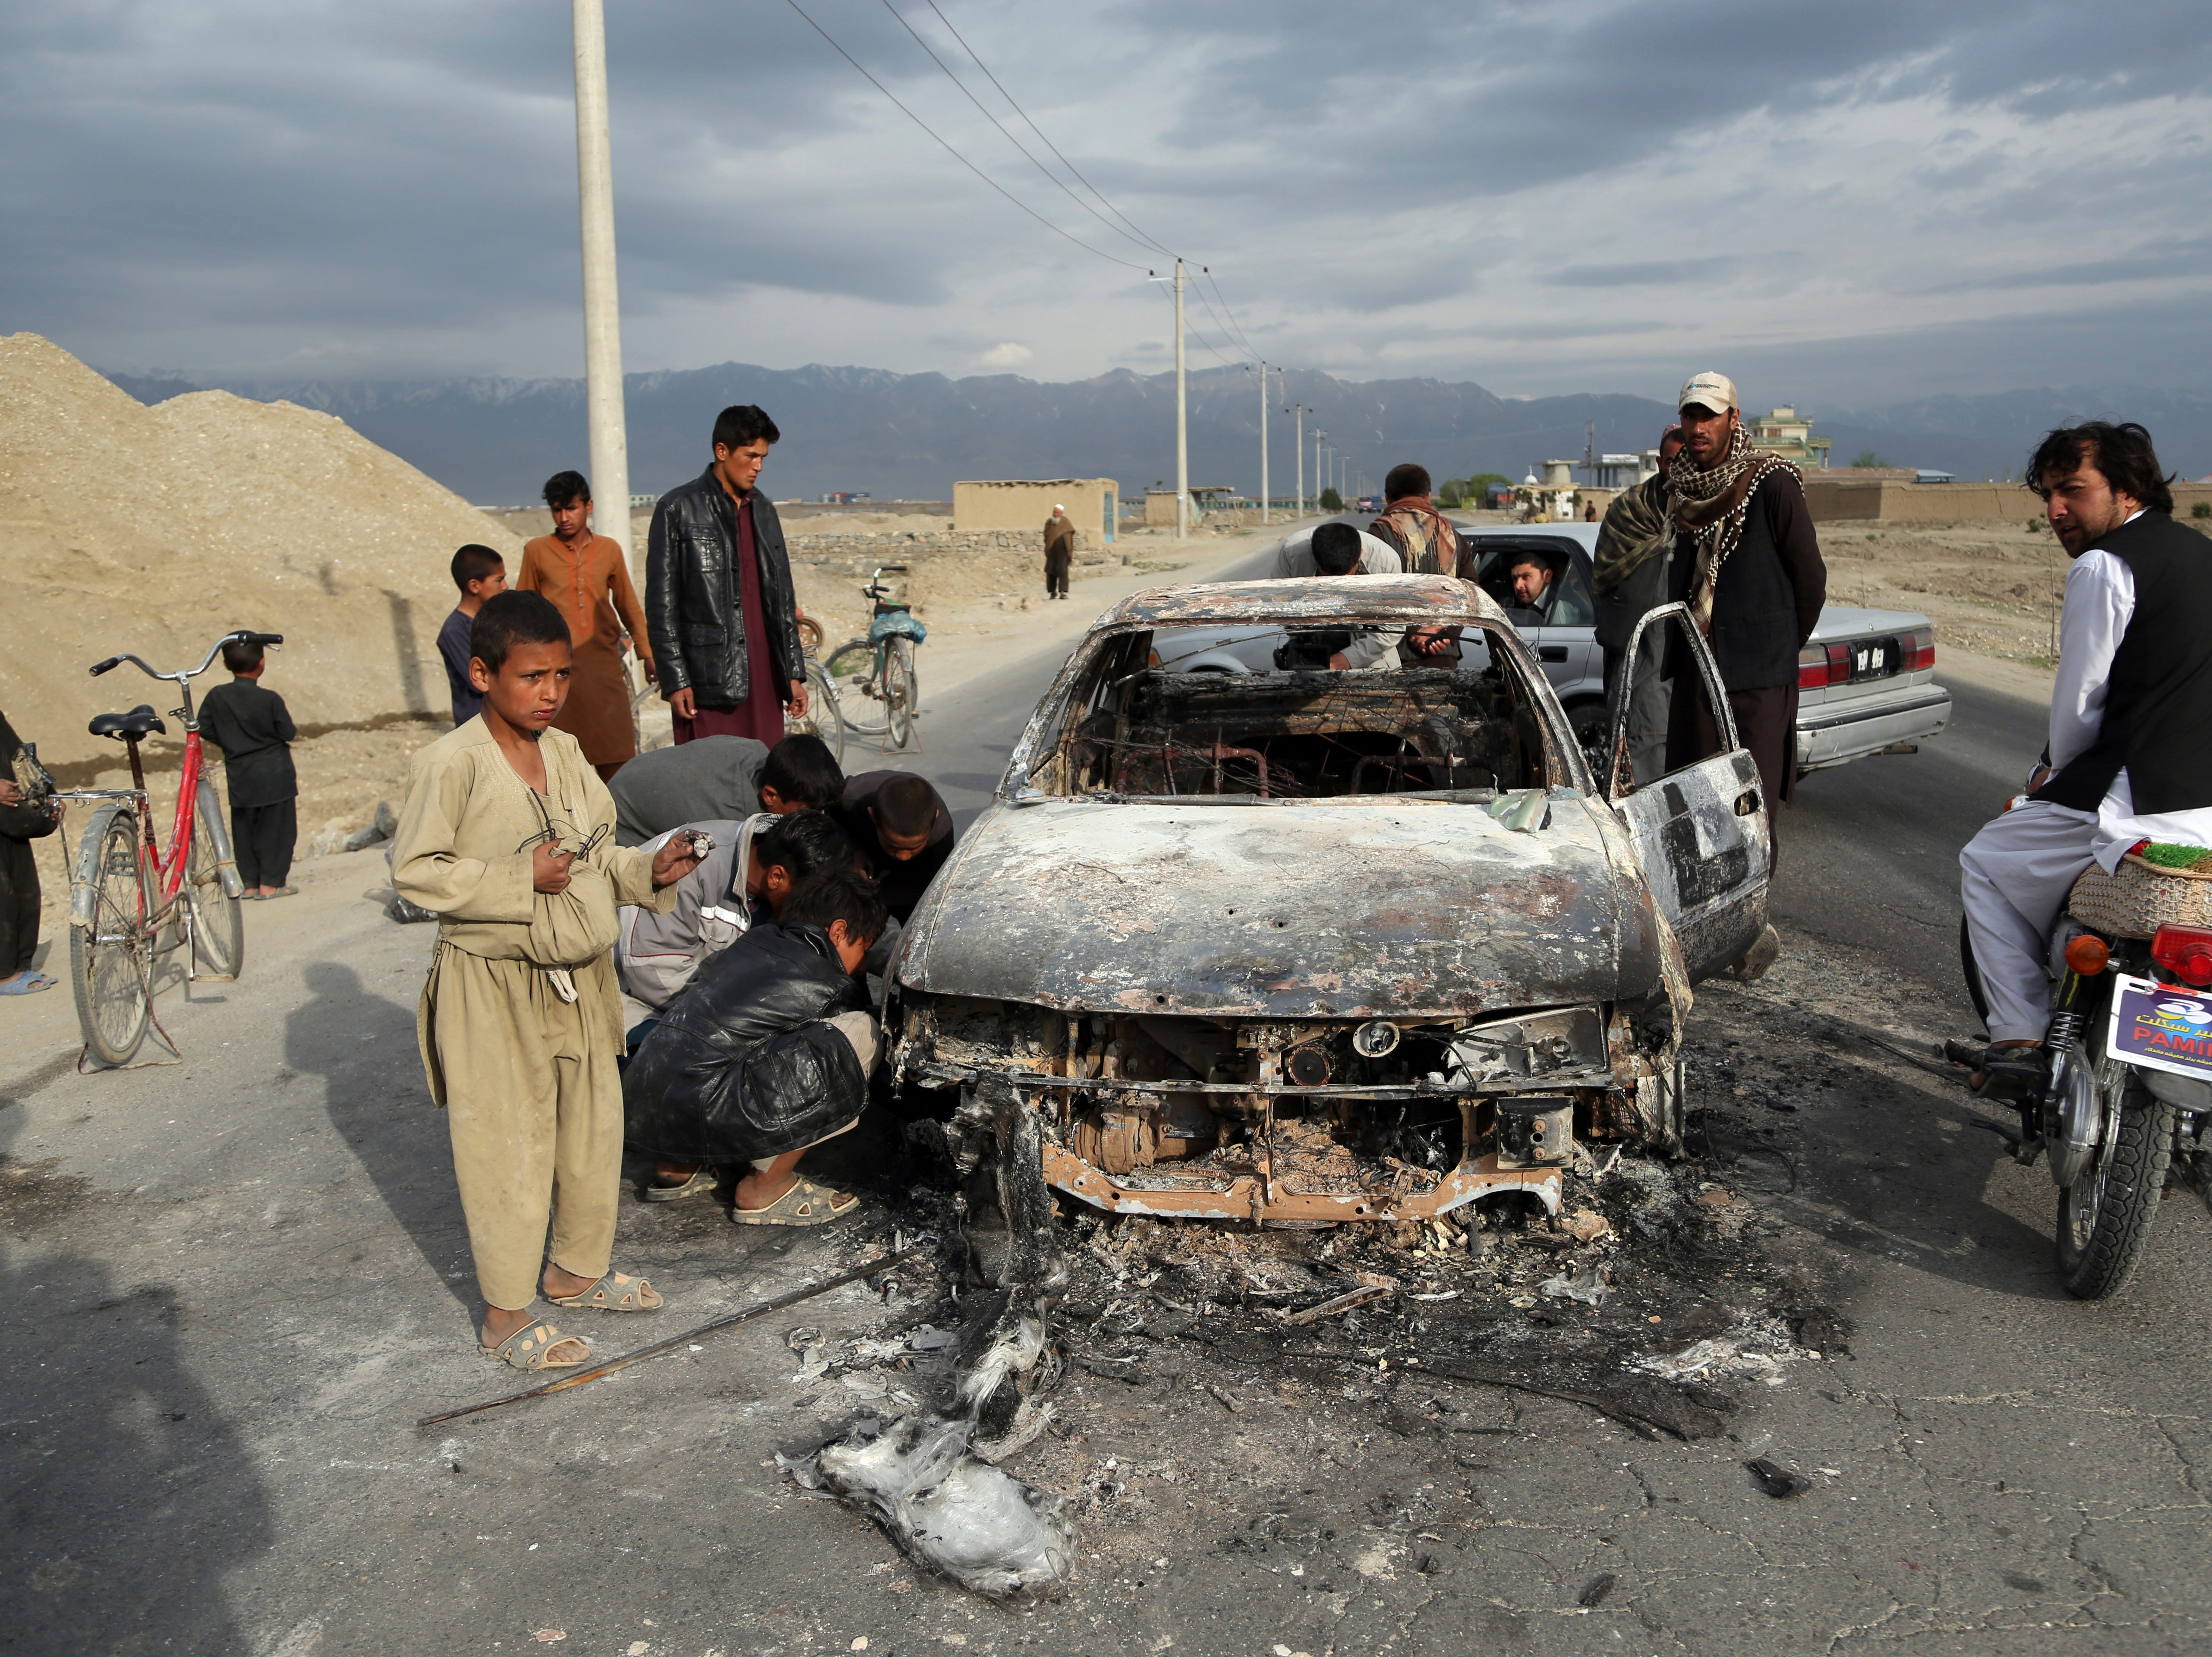 Afghans watch a civilian vehicle burnt after being shot by US forces after an attack near the Bagram Air Base, north of Kabul, Afghanistan, Tuesday, April 9, 2019. Three American service members  were killed when their convoy hit a roadside bomb on Monday near the main U.S. base in Afghanistan, the U.S. forces said. The Taliban claimed responsibility for the attack.